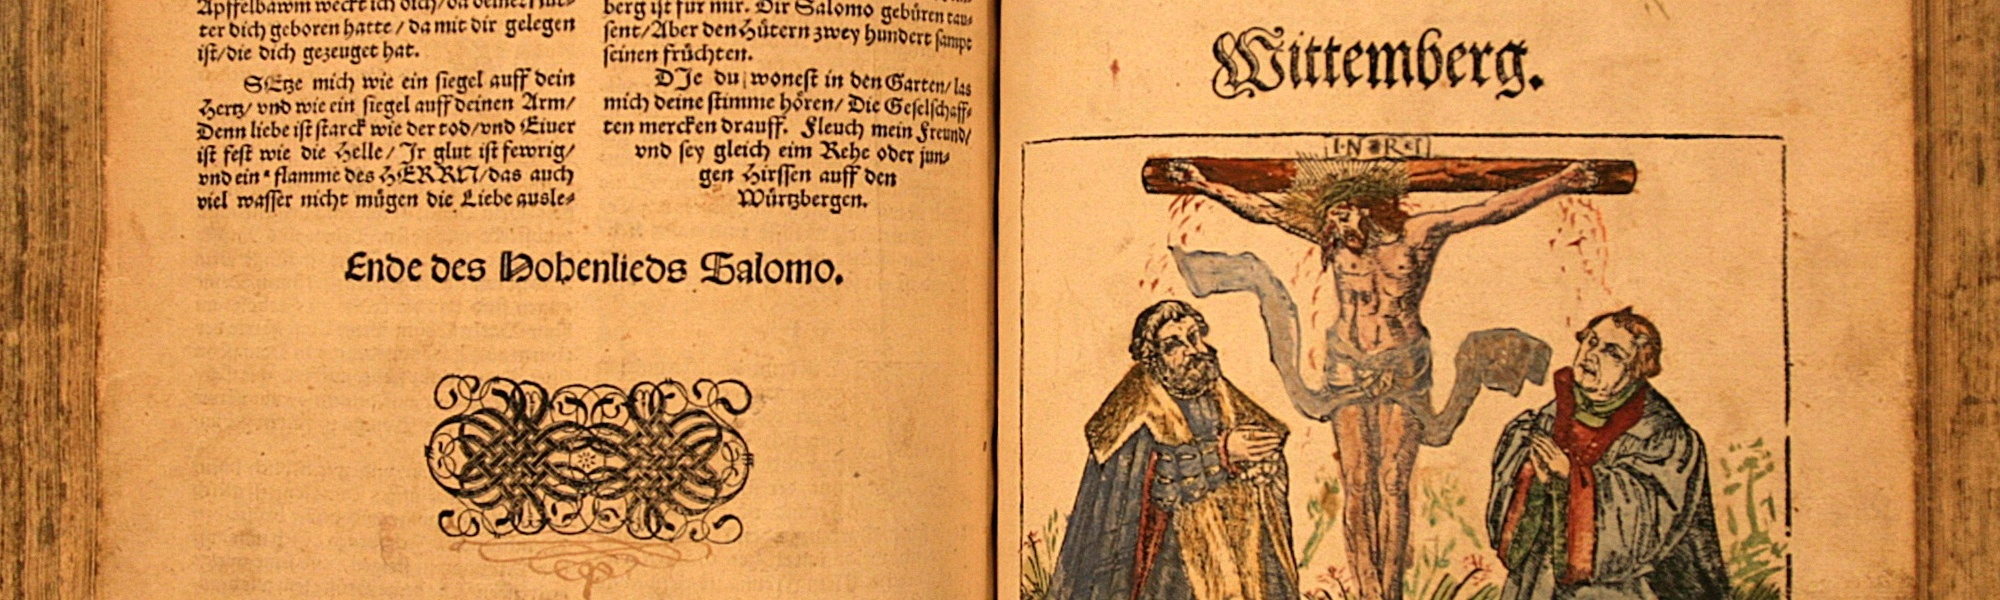 luther_bible02